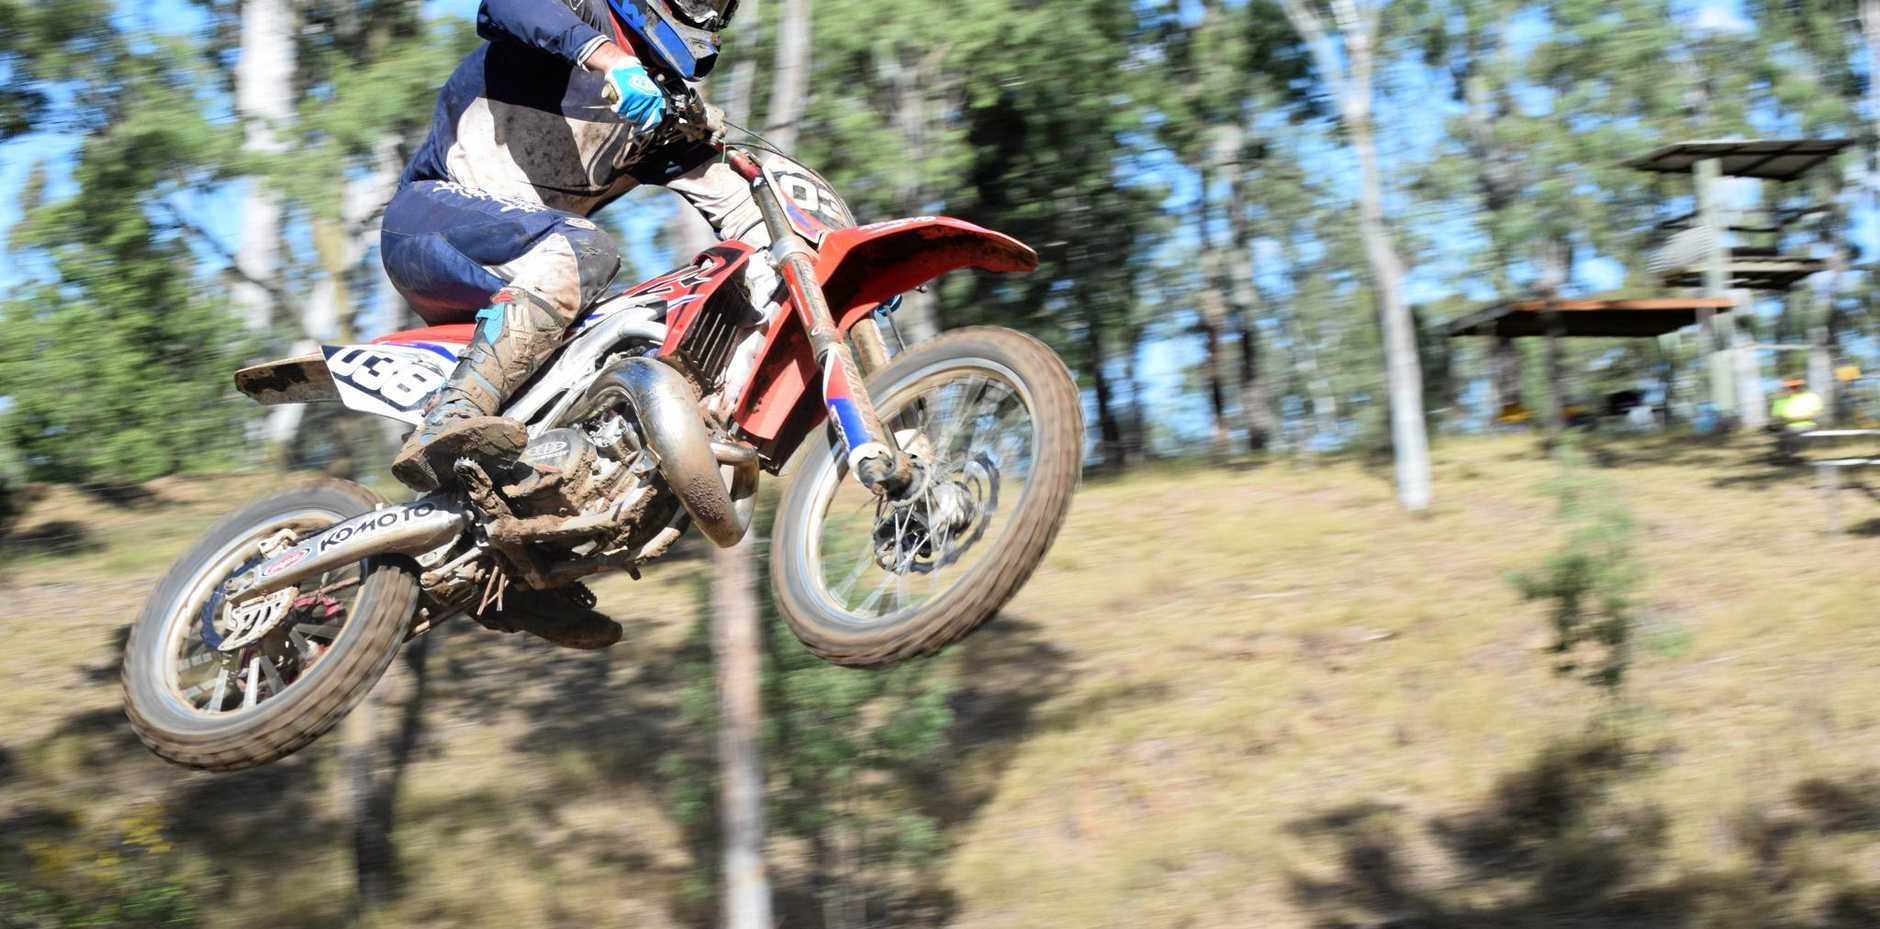 UP IN THE AIR: One of the riders successfully makes a huge jump at the MX track in Mundubbera.